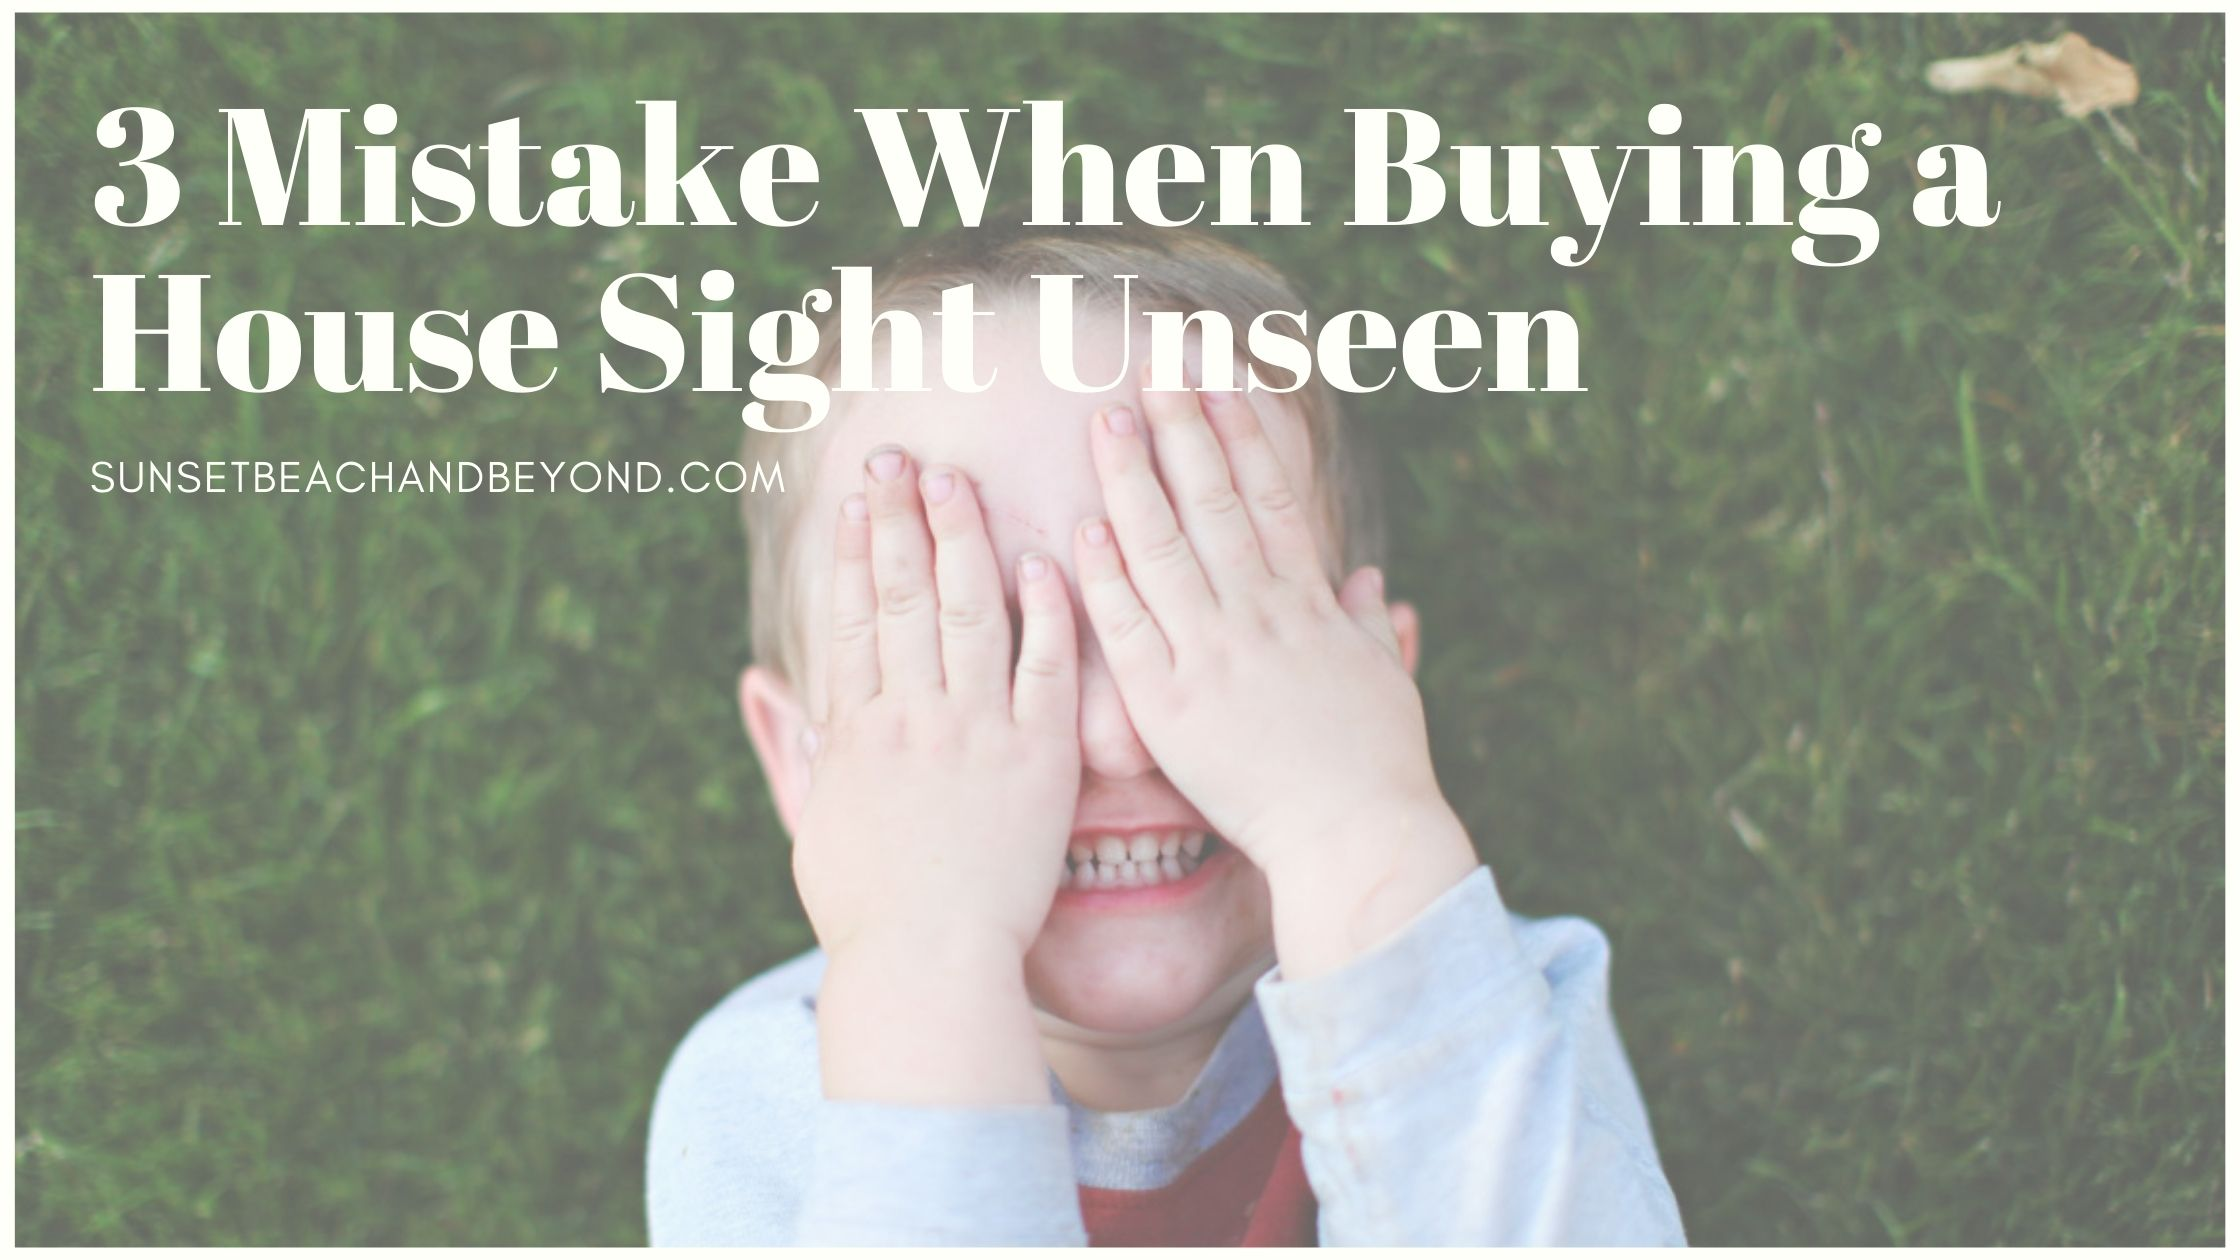 3 Mistakes When Buying a House Sight Unseen